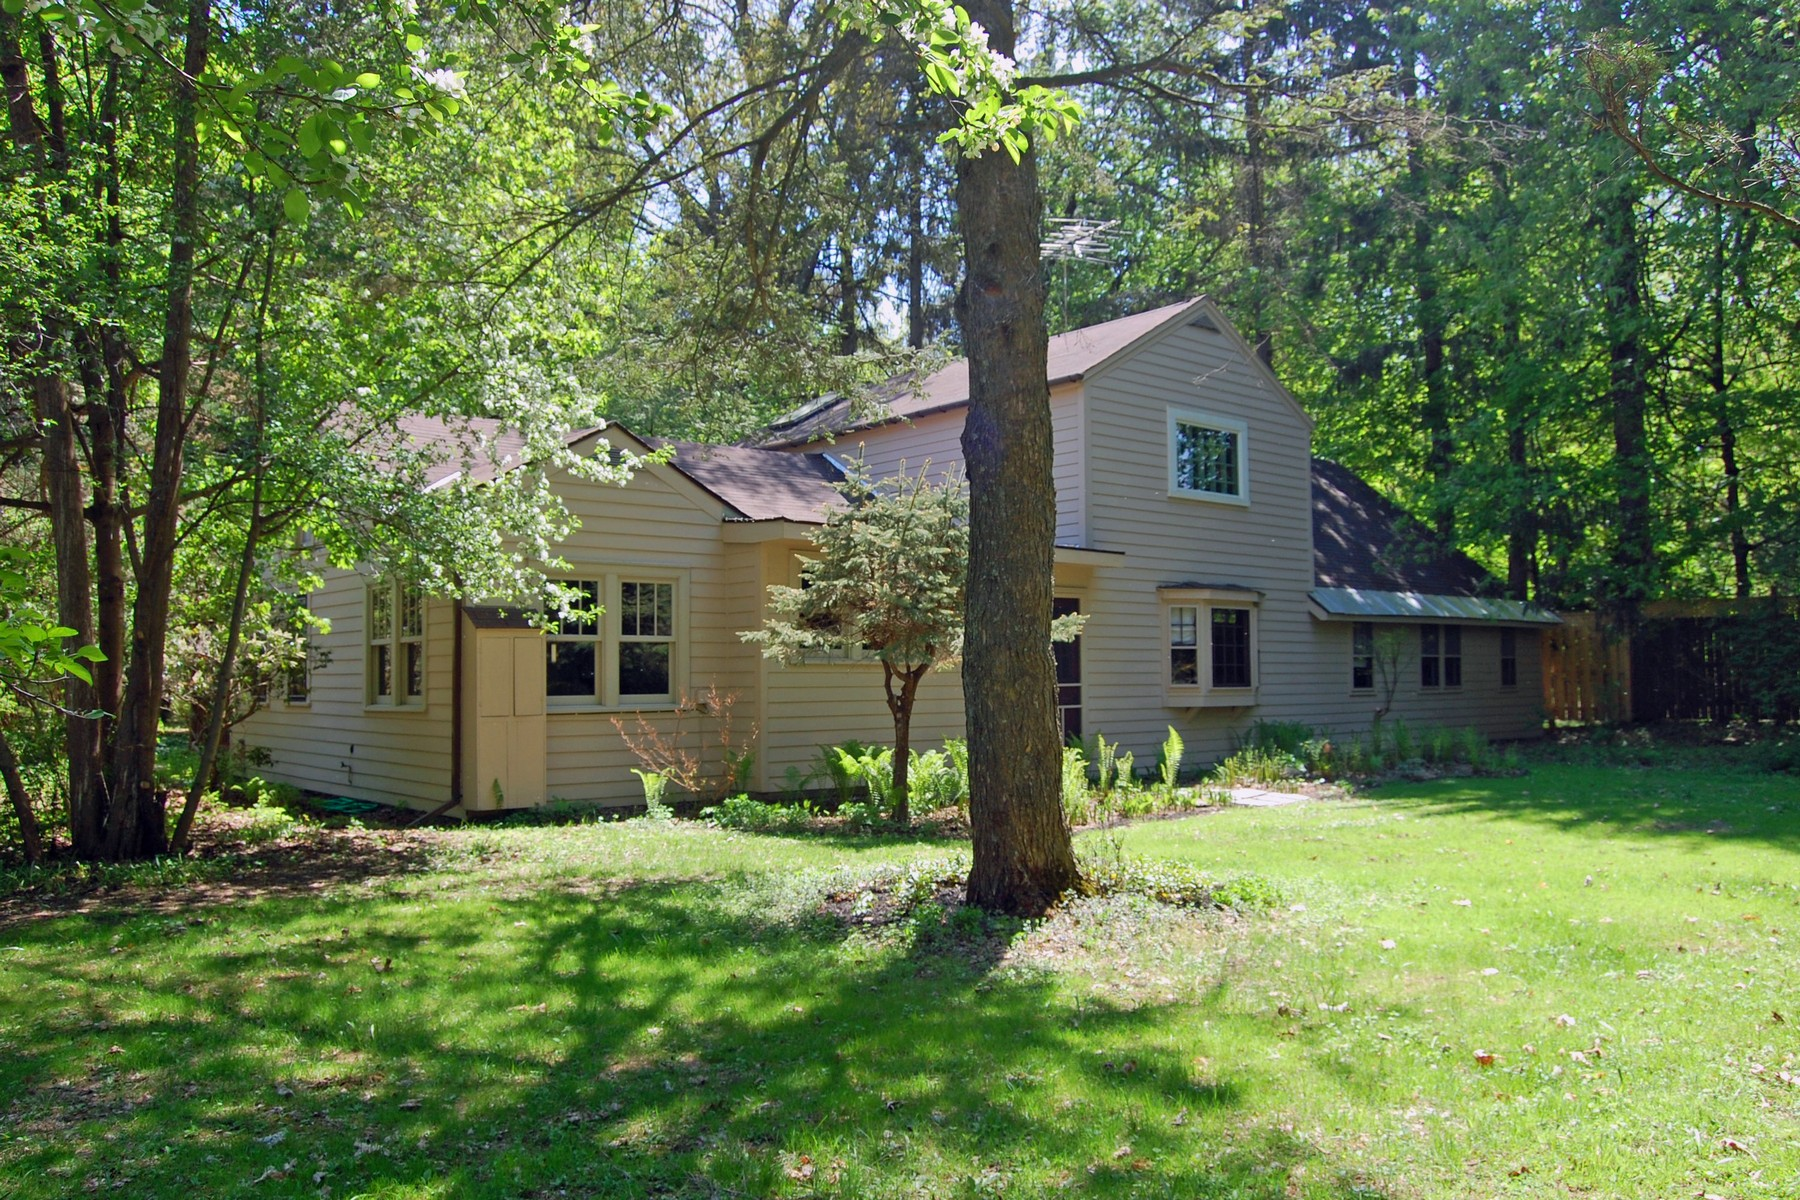 Single Family Home for Sale at Private House in the Village 53 Broad Street Kinderhook, New York 12106 United States